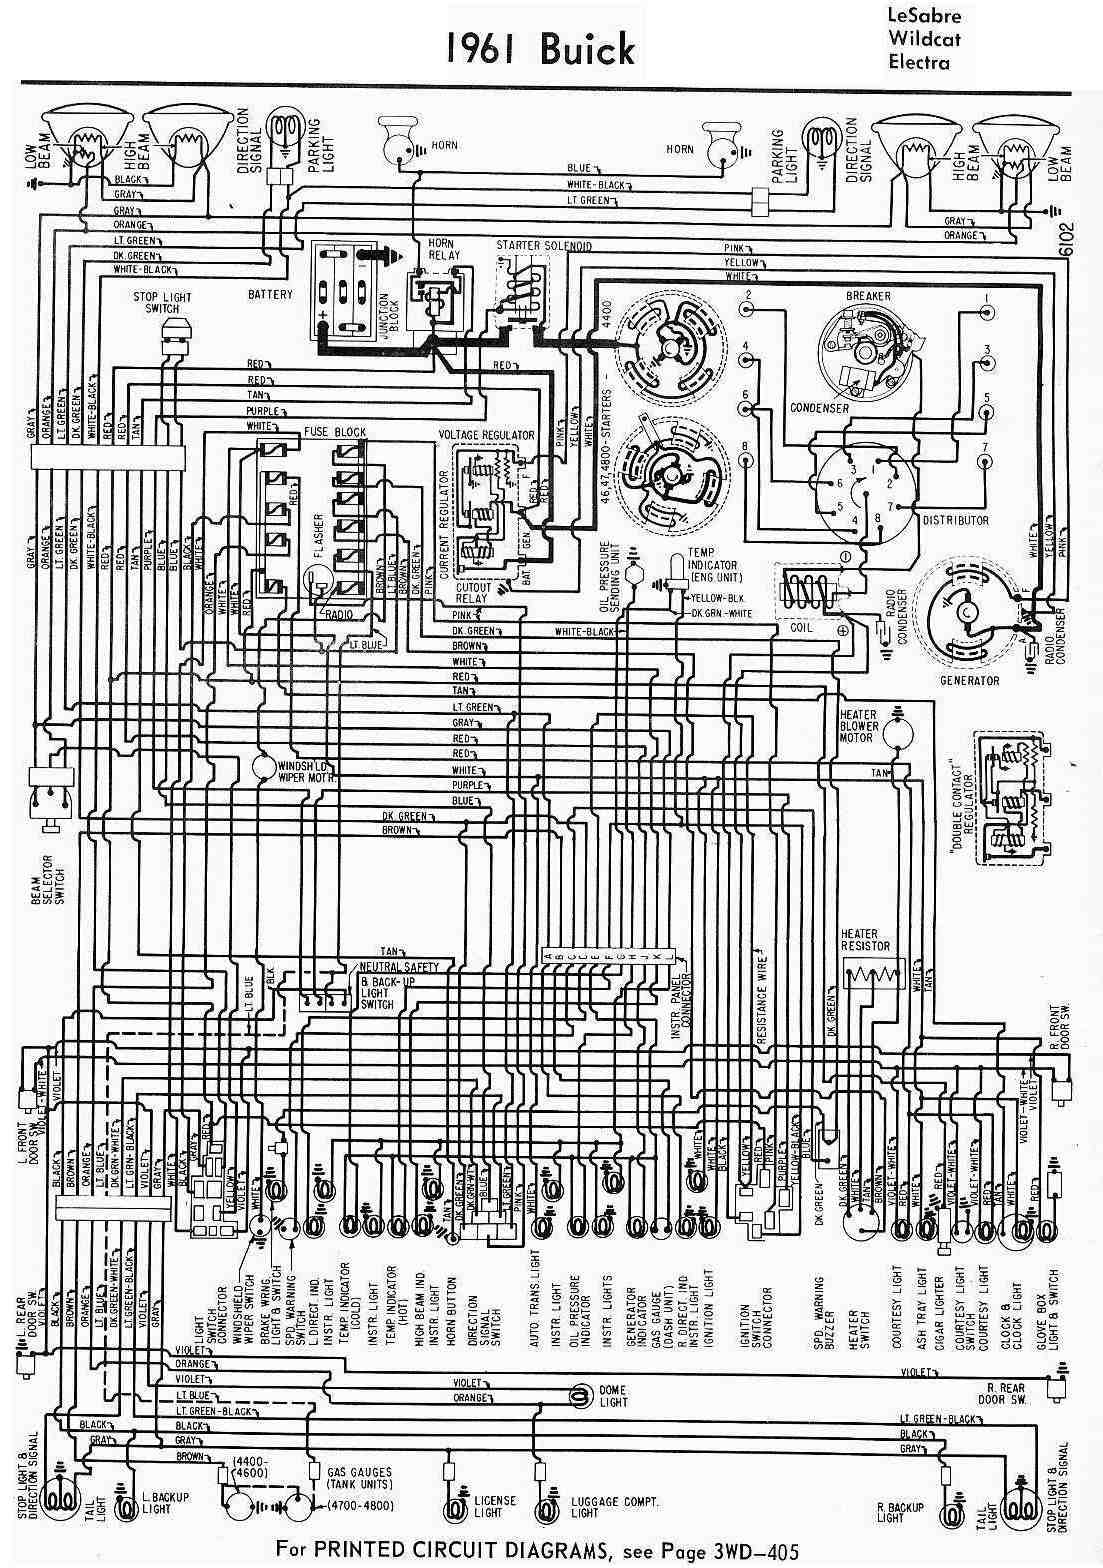 medium resolution of wiring diagram for 1997 buick lesabre wiring diagram expert wiring diagram 2000 buick lesabre